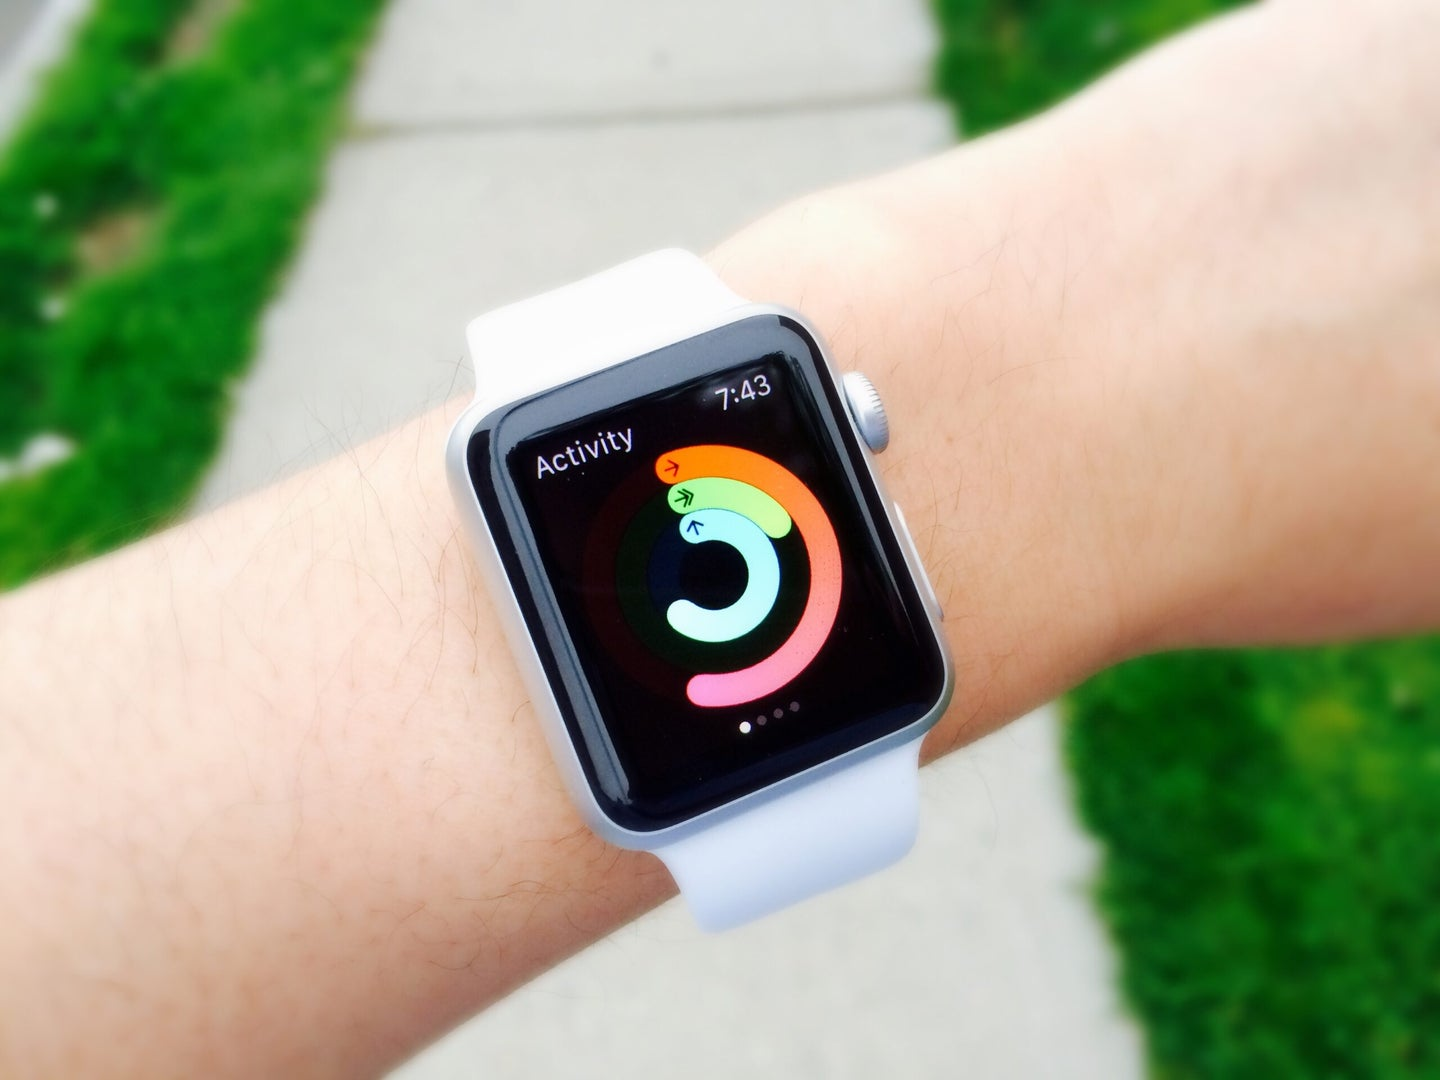 Apple Watches may soon decide when to administer medications